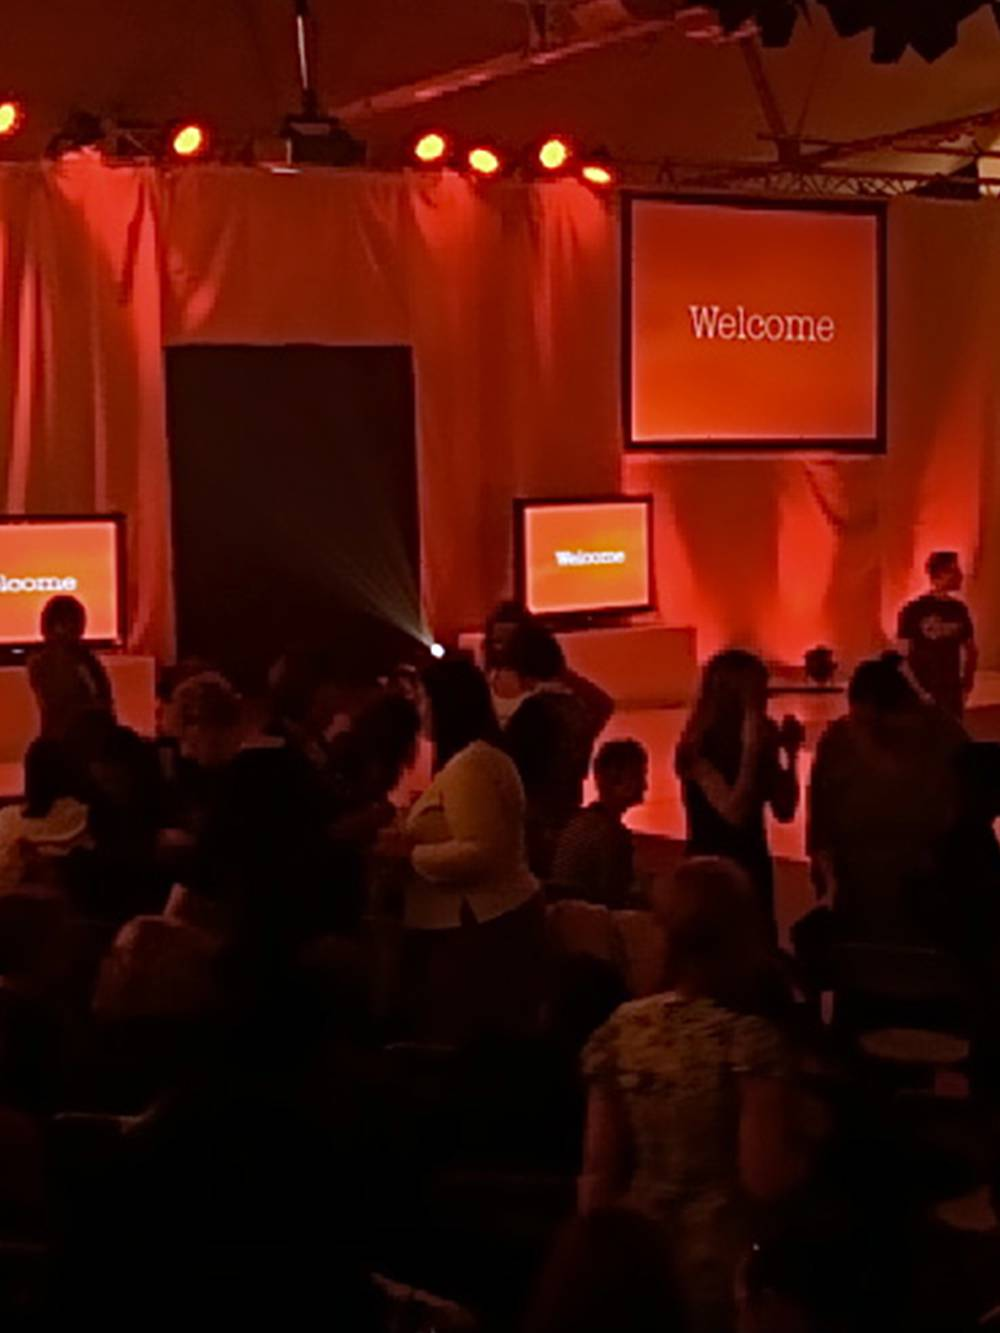 Fashion Show Production in Liverpool with Catwalk, Backdrop, Lighting and AV